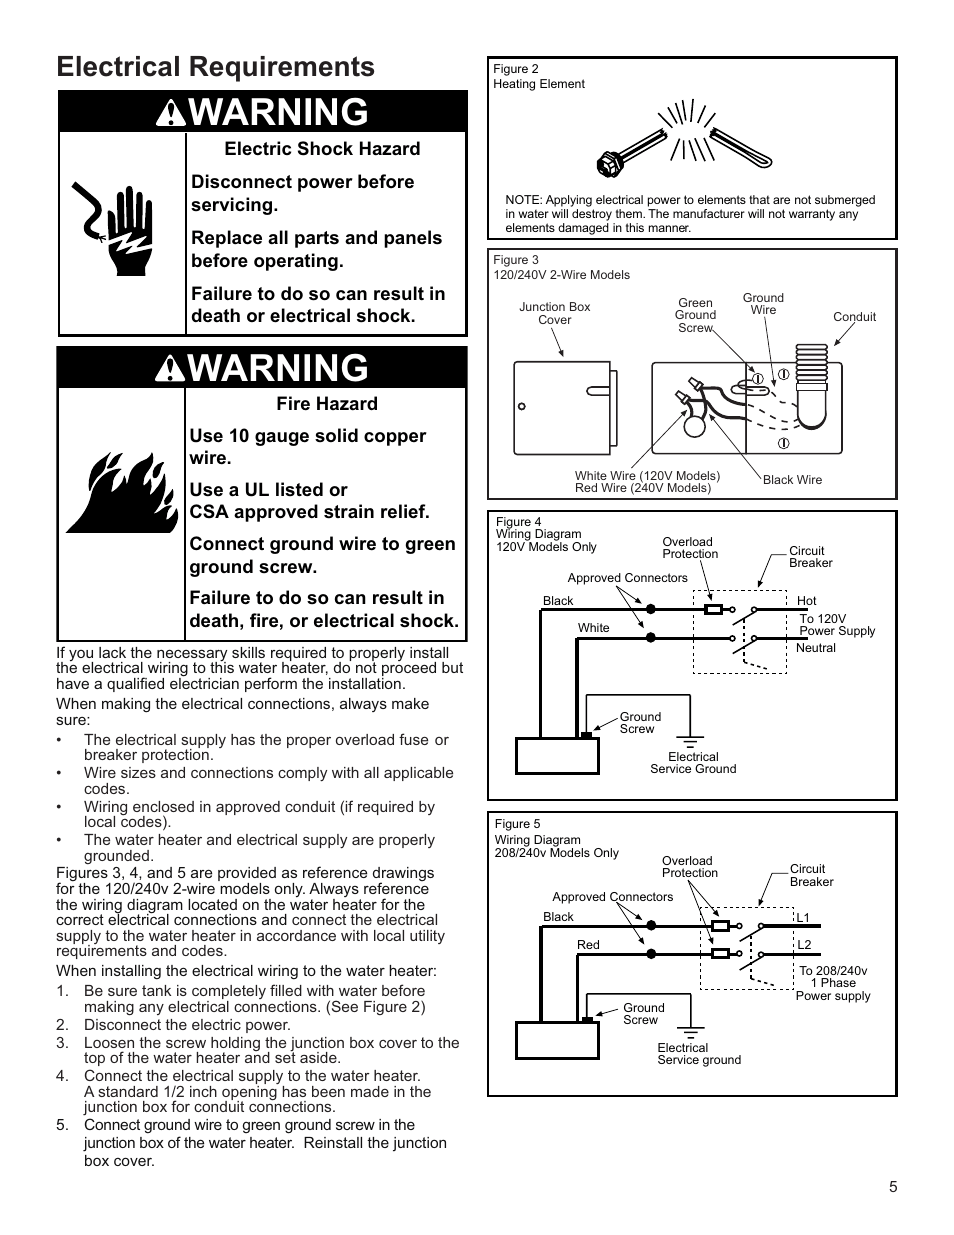 hight resolution of warning electrical requirements whirlpool e2f65hd045v user manual page 5 16